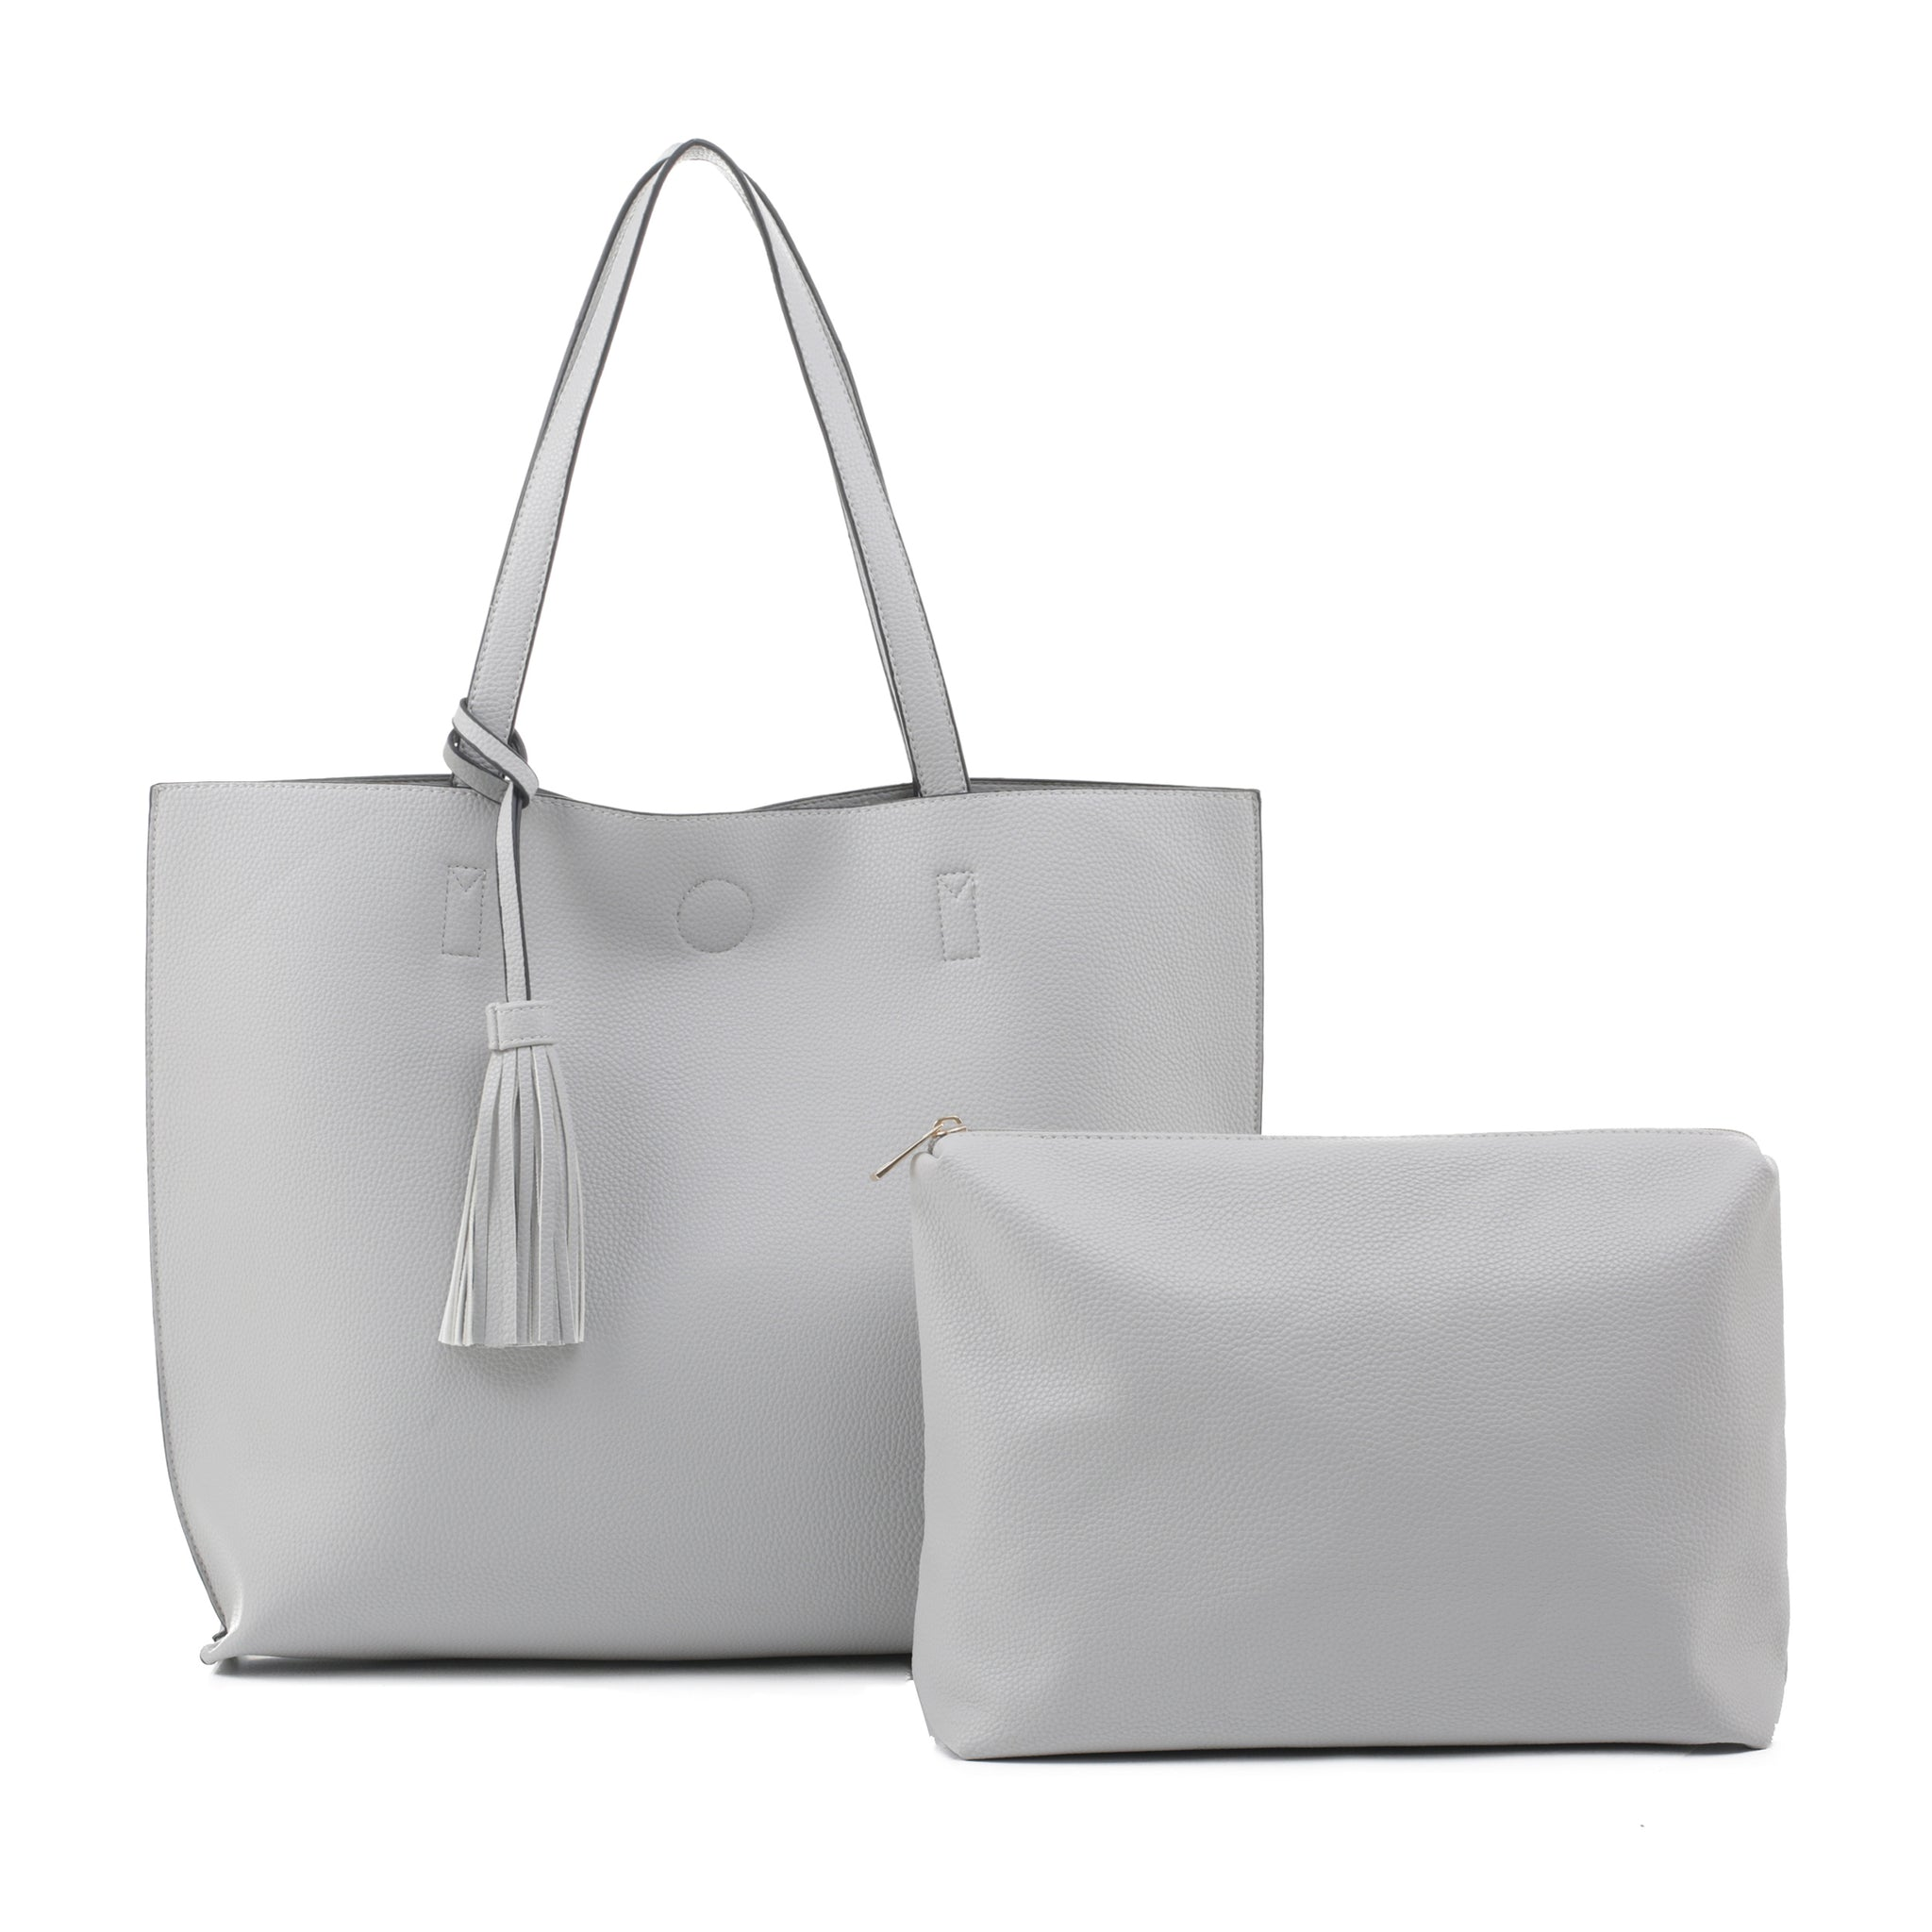 2 Piece Bella Tote Set